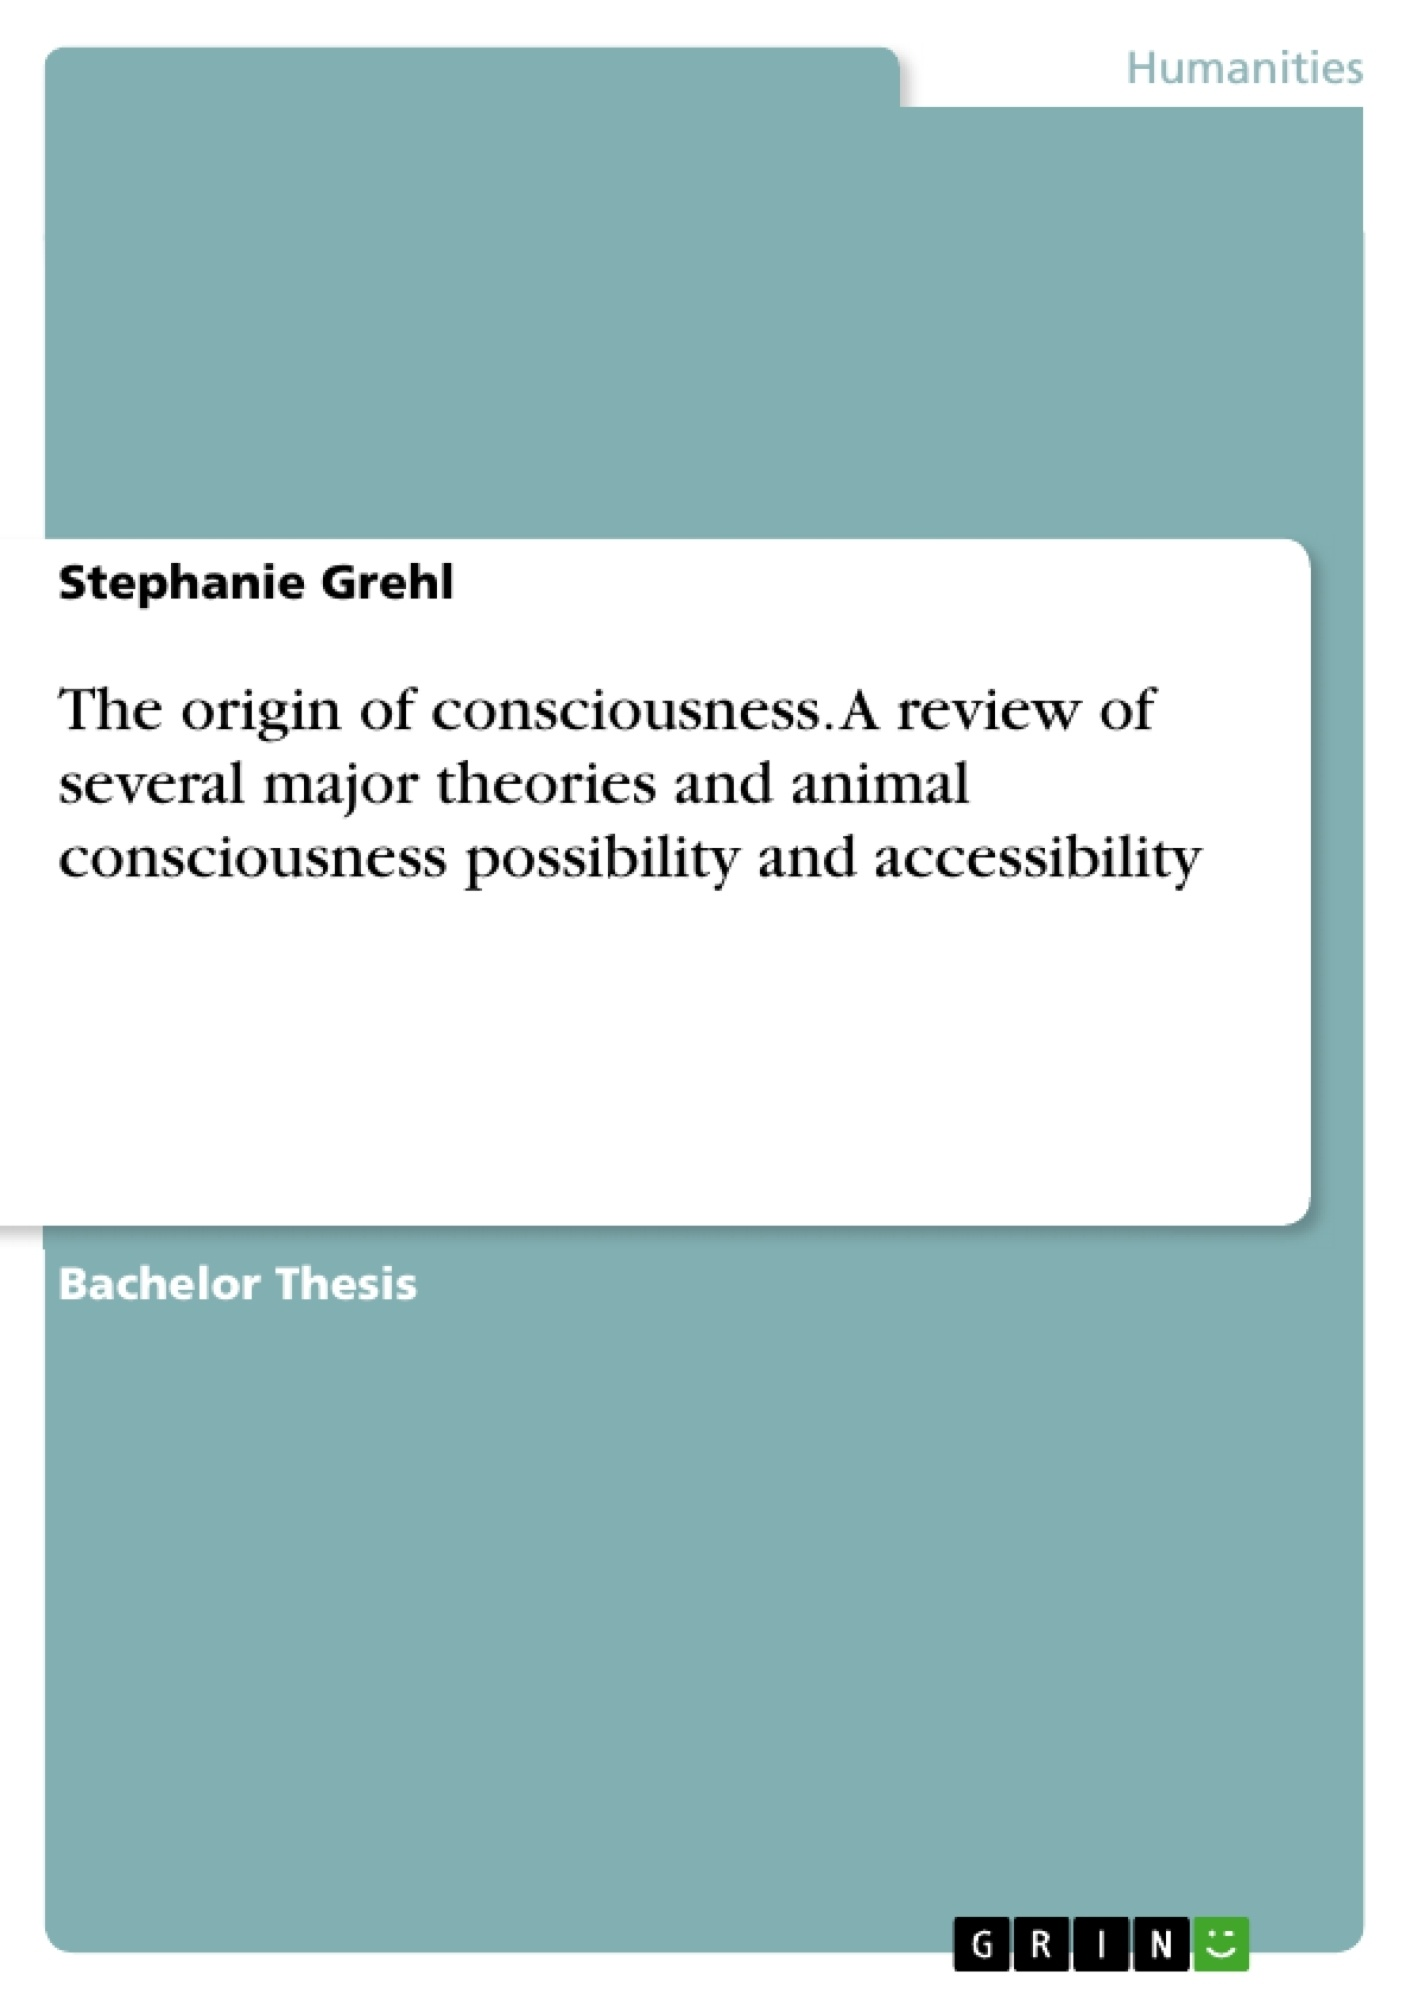 Title: The origin of consciousness. A review of several major theories and animal consciousness possibility and accessibility